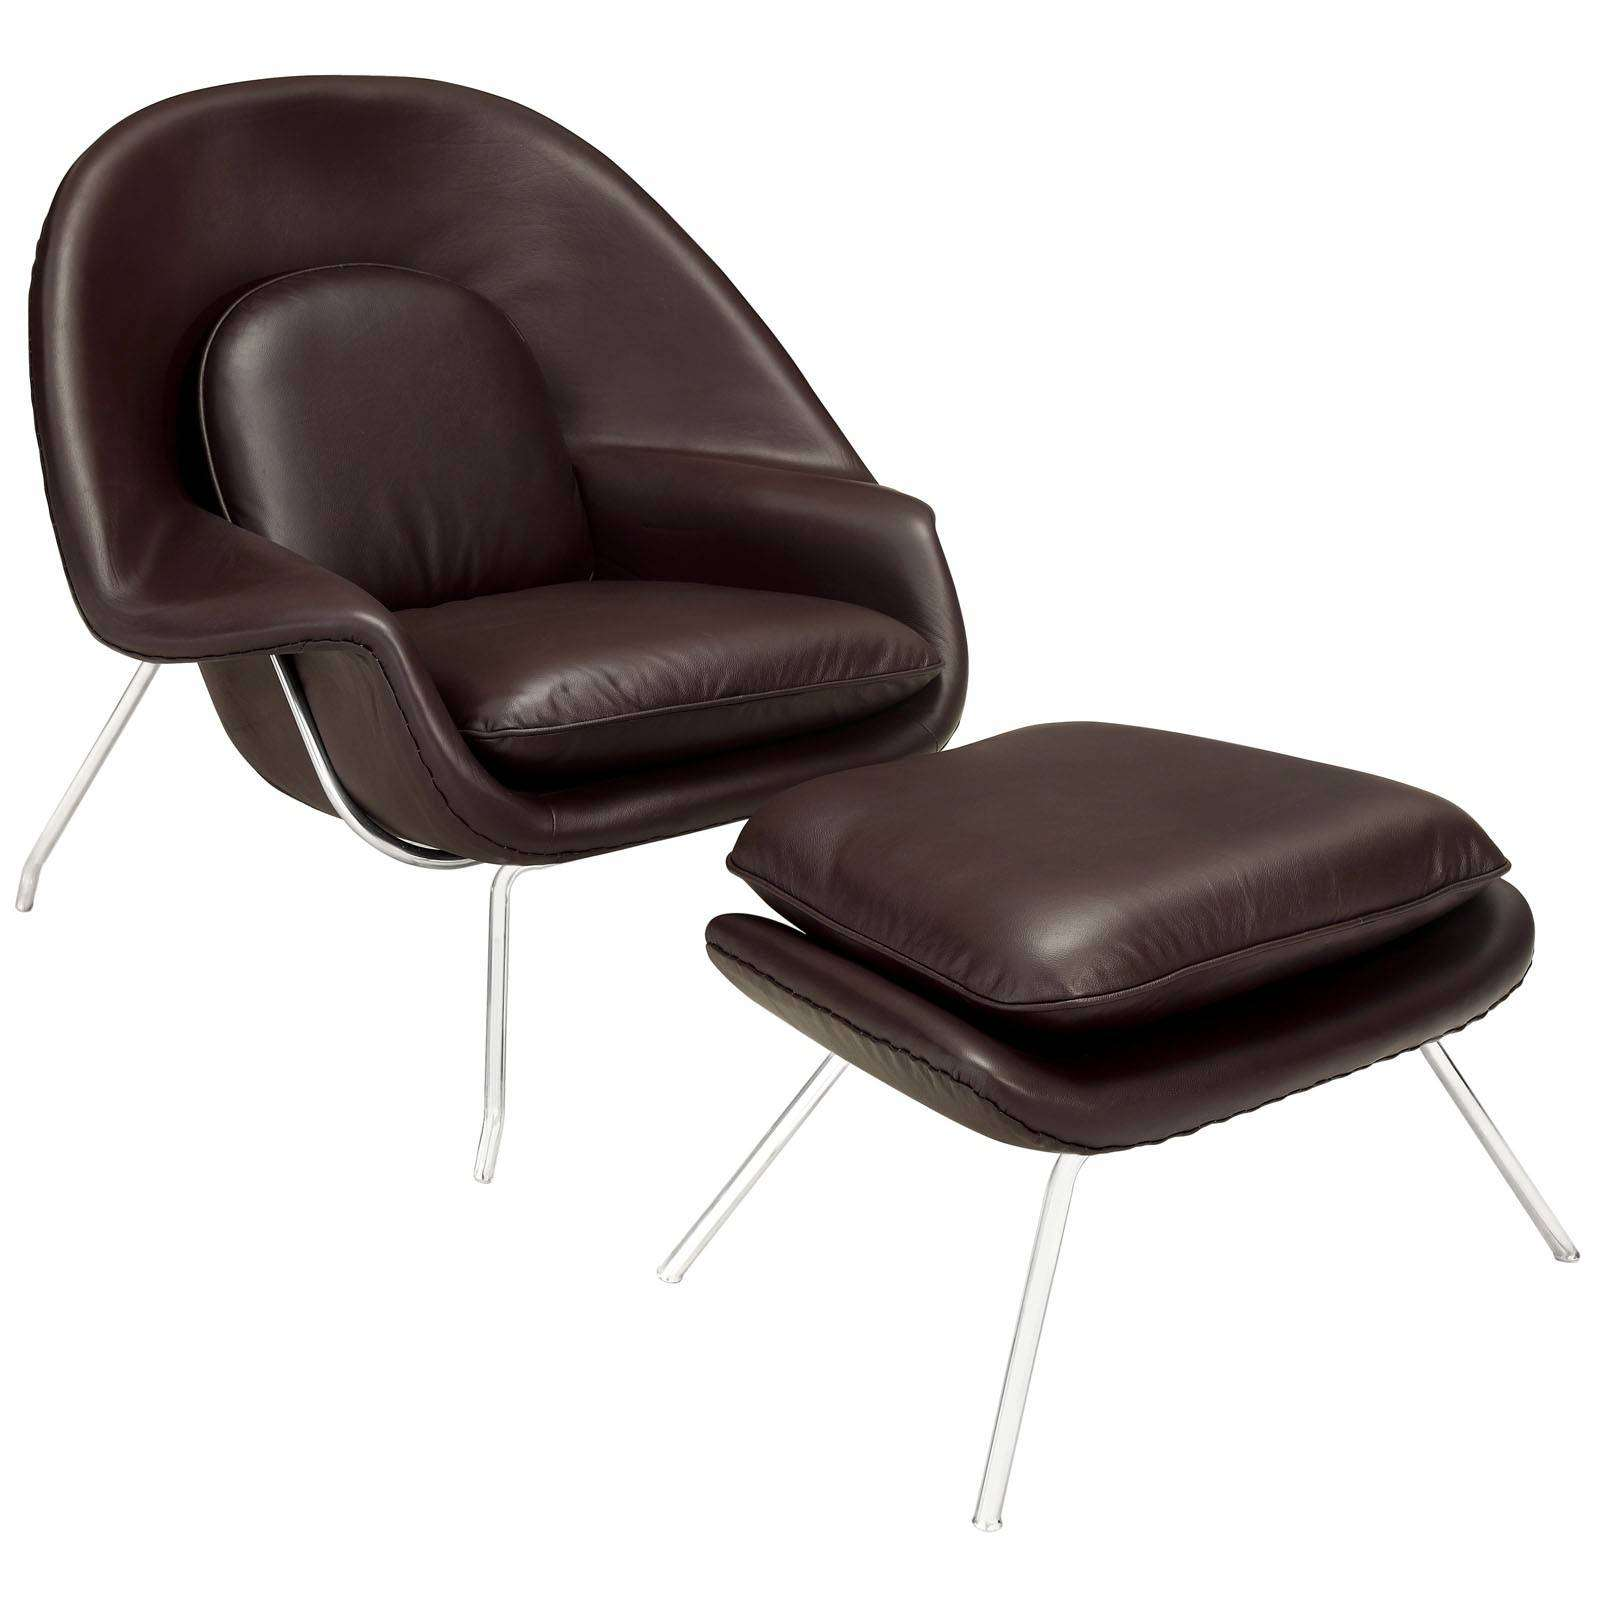 Eero Saarinen Womb Lounge Chair Ottoman Leather